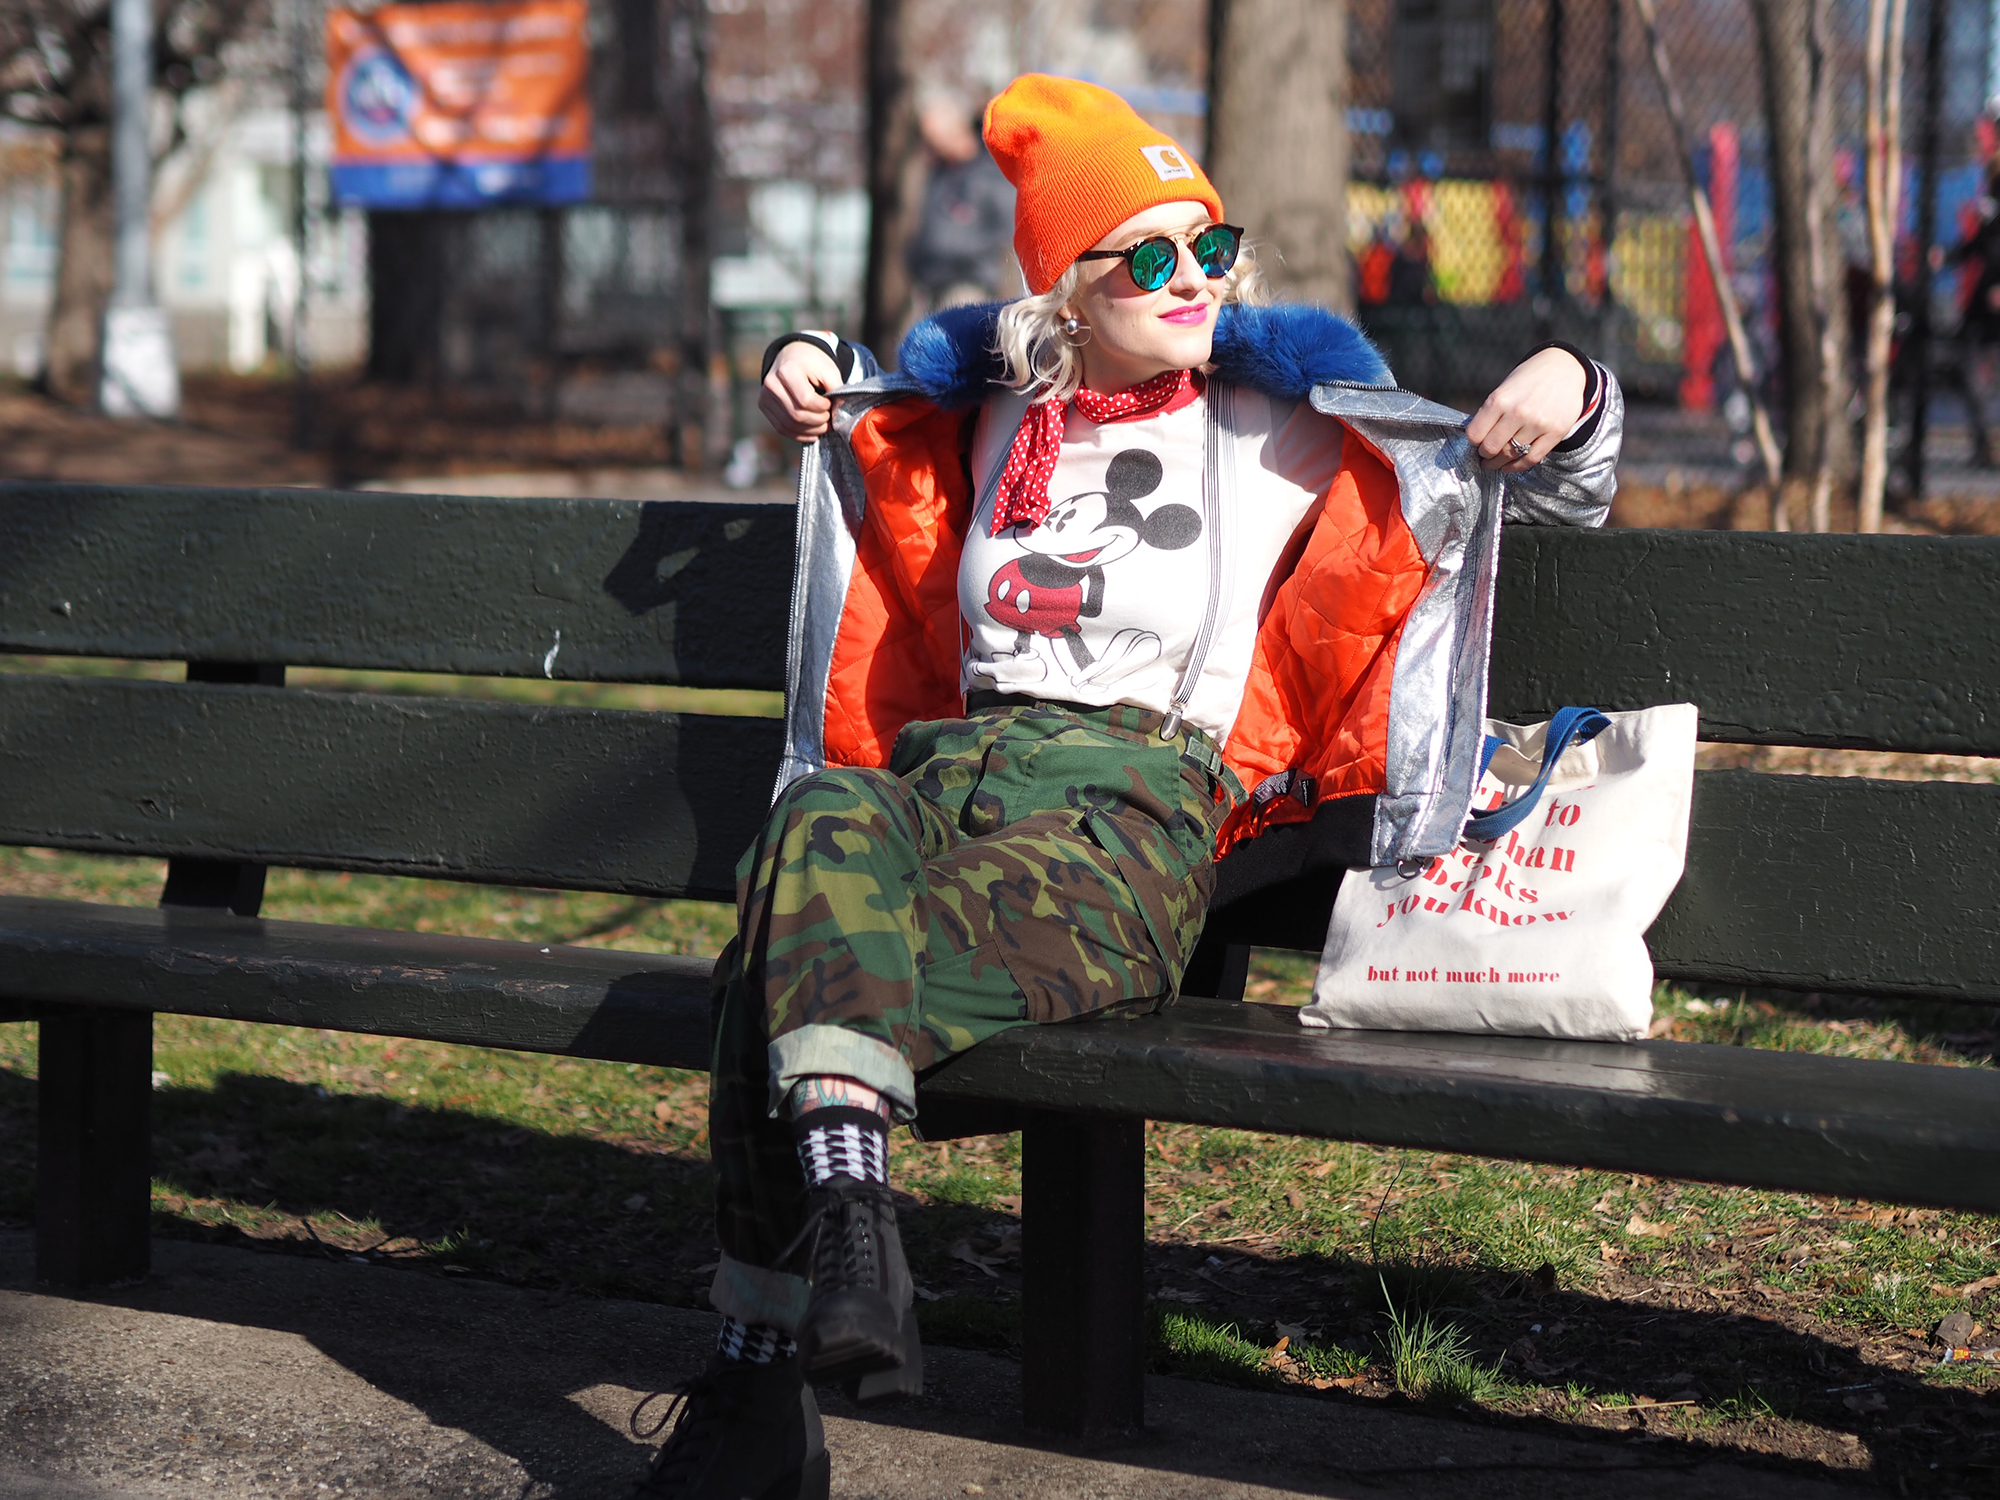 Taking hunter-chic to the streets with this neon knit cap and camo pants. More on the blog!